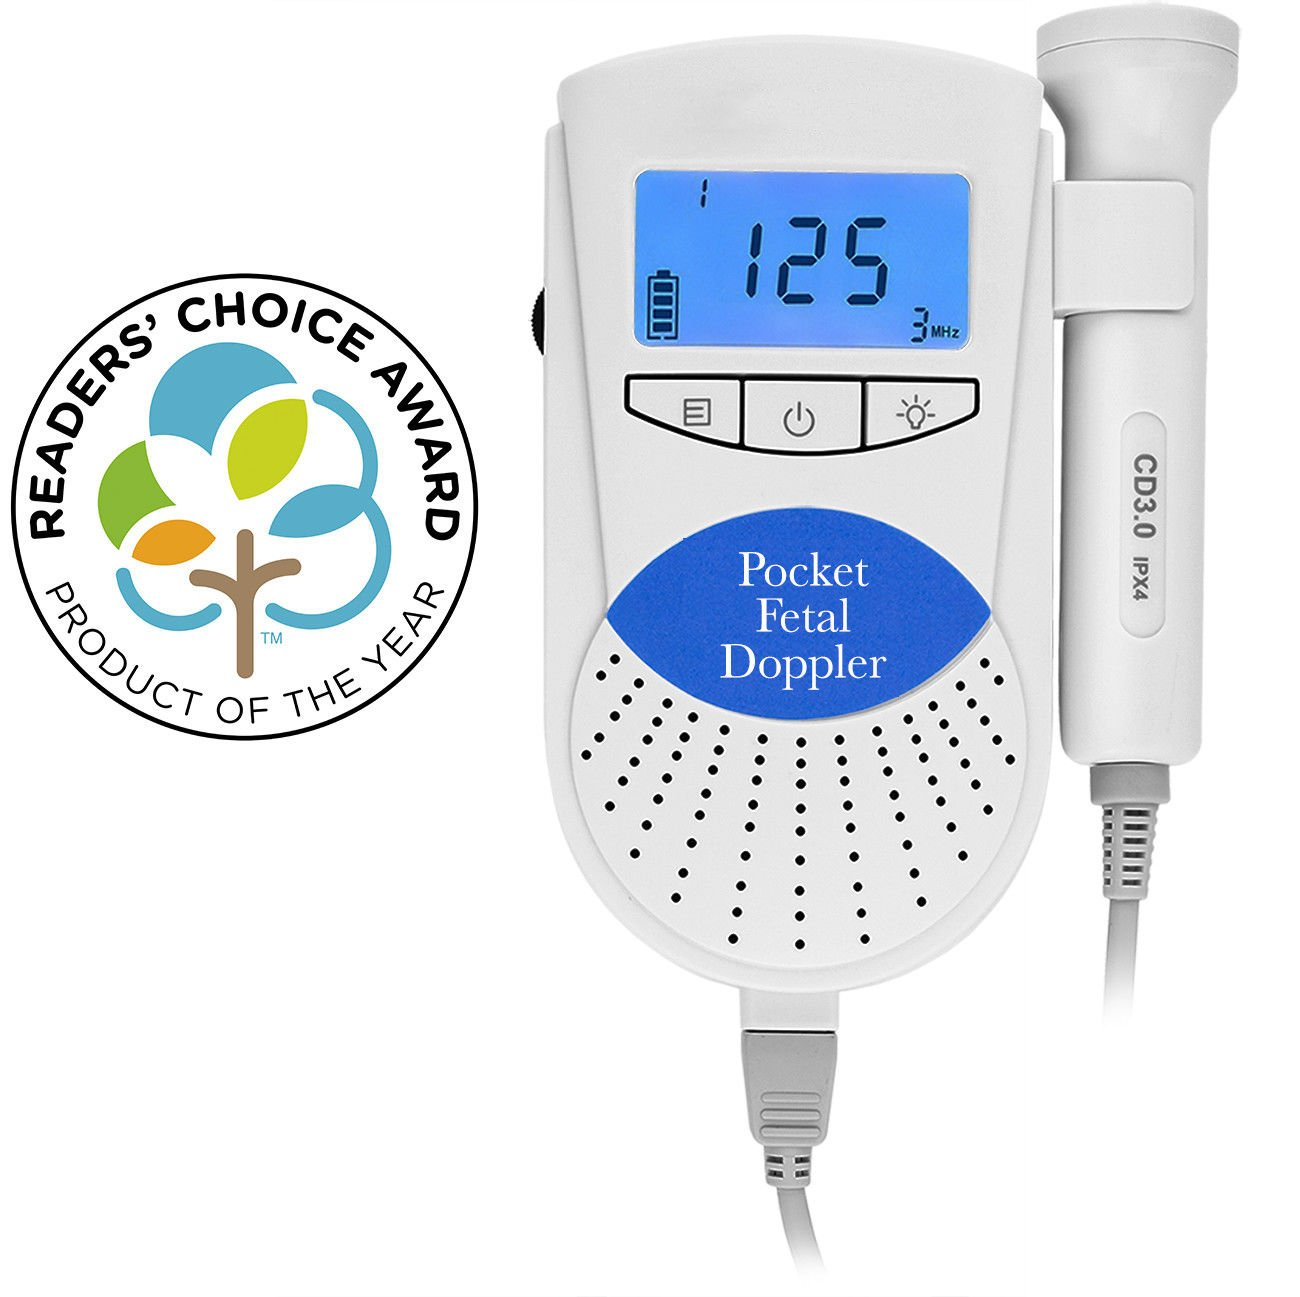 Baby Monitor Sound Amplifier - Hear Your Baby's Kicks & Noise in Womb - FDA Approved for Home Use - Perfect Baby Shower Gift